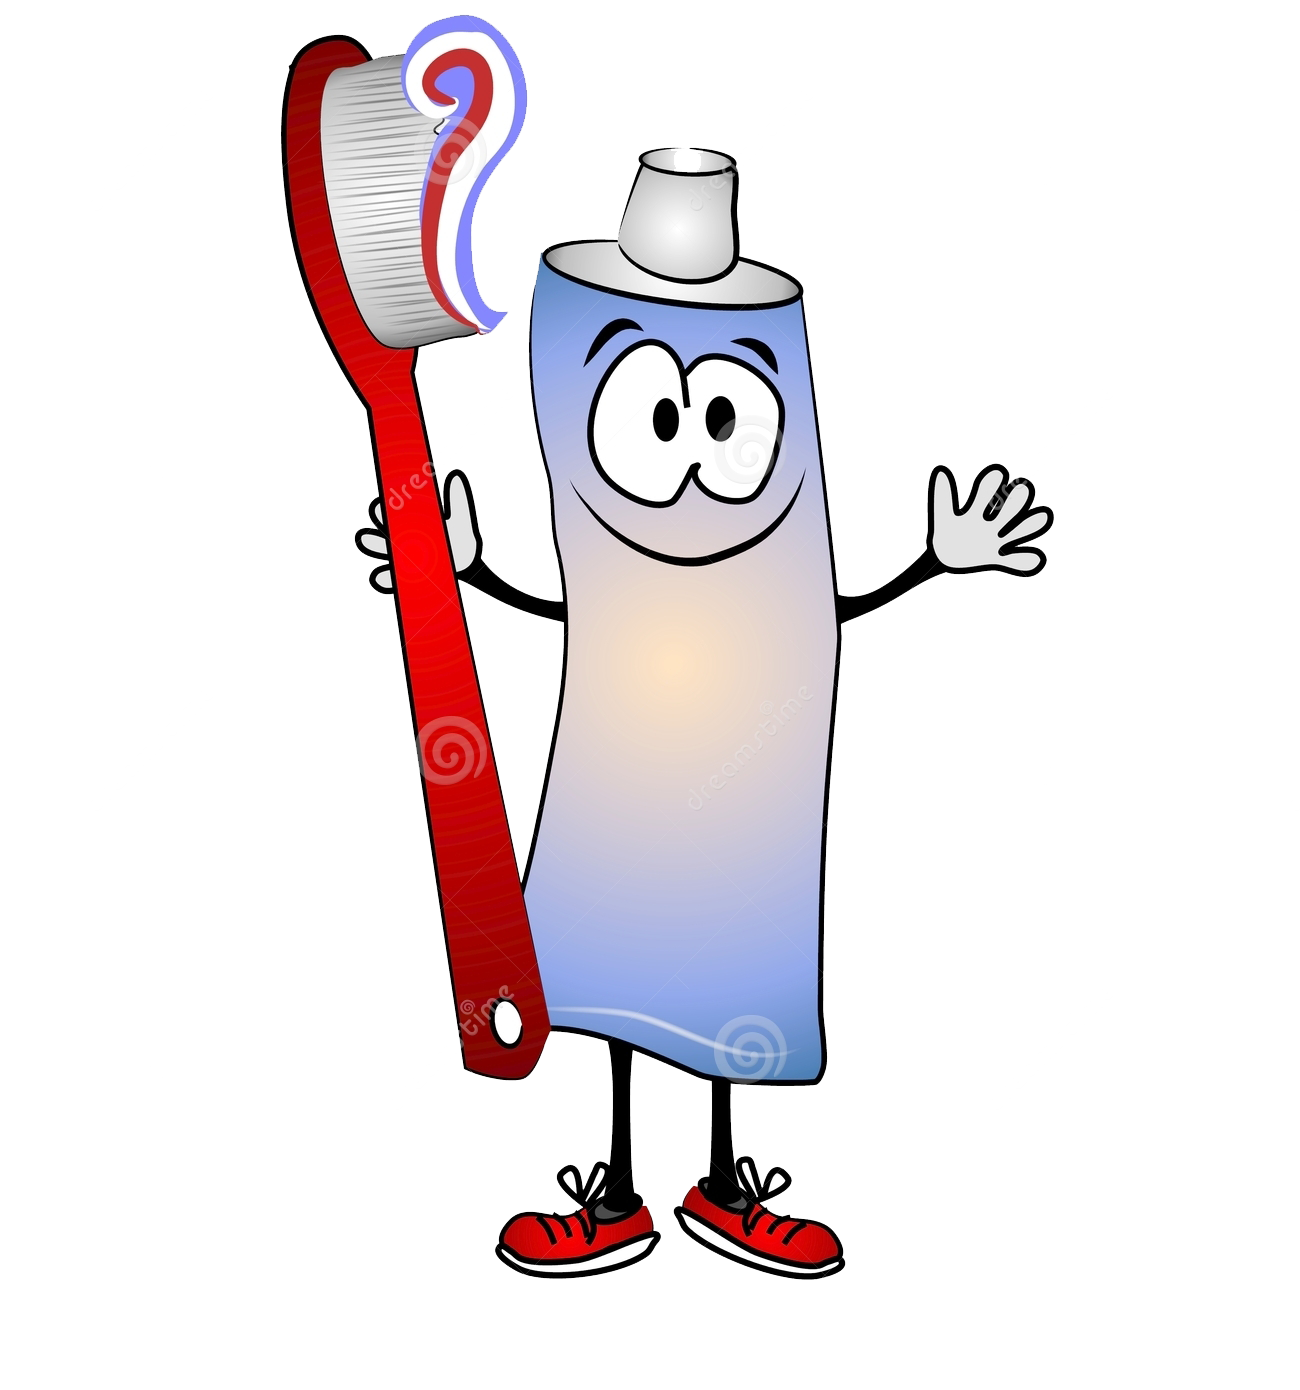 Dentist clipart toothbrush. Toothpaste mouthwash dentistry transprent